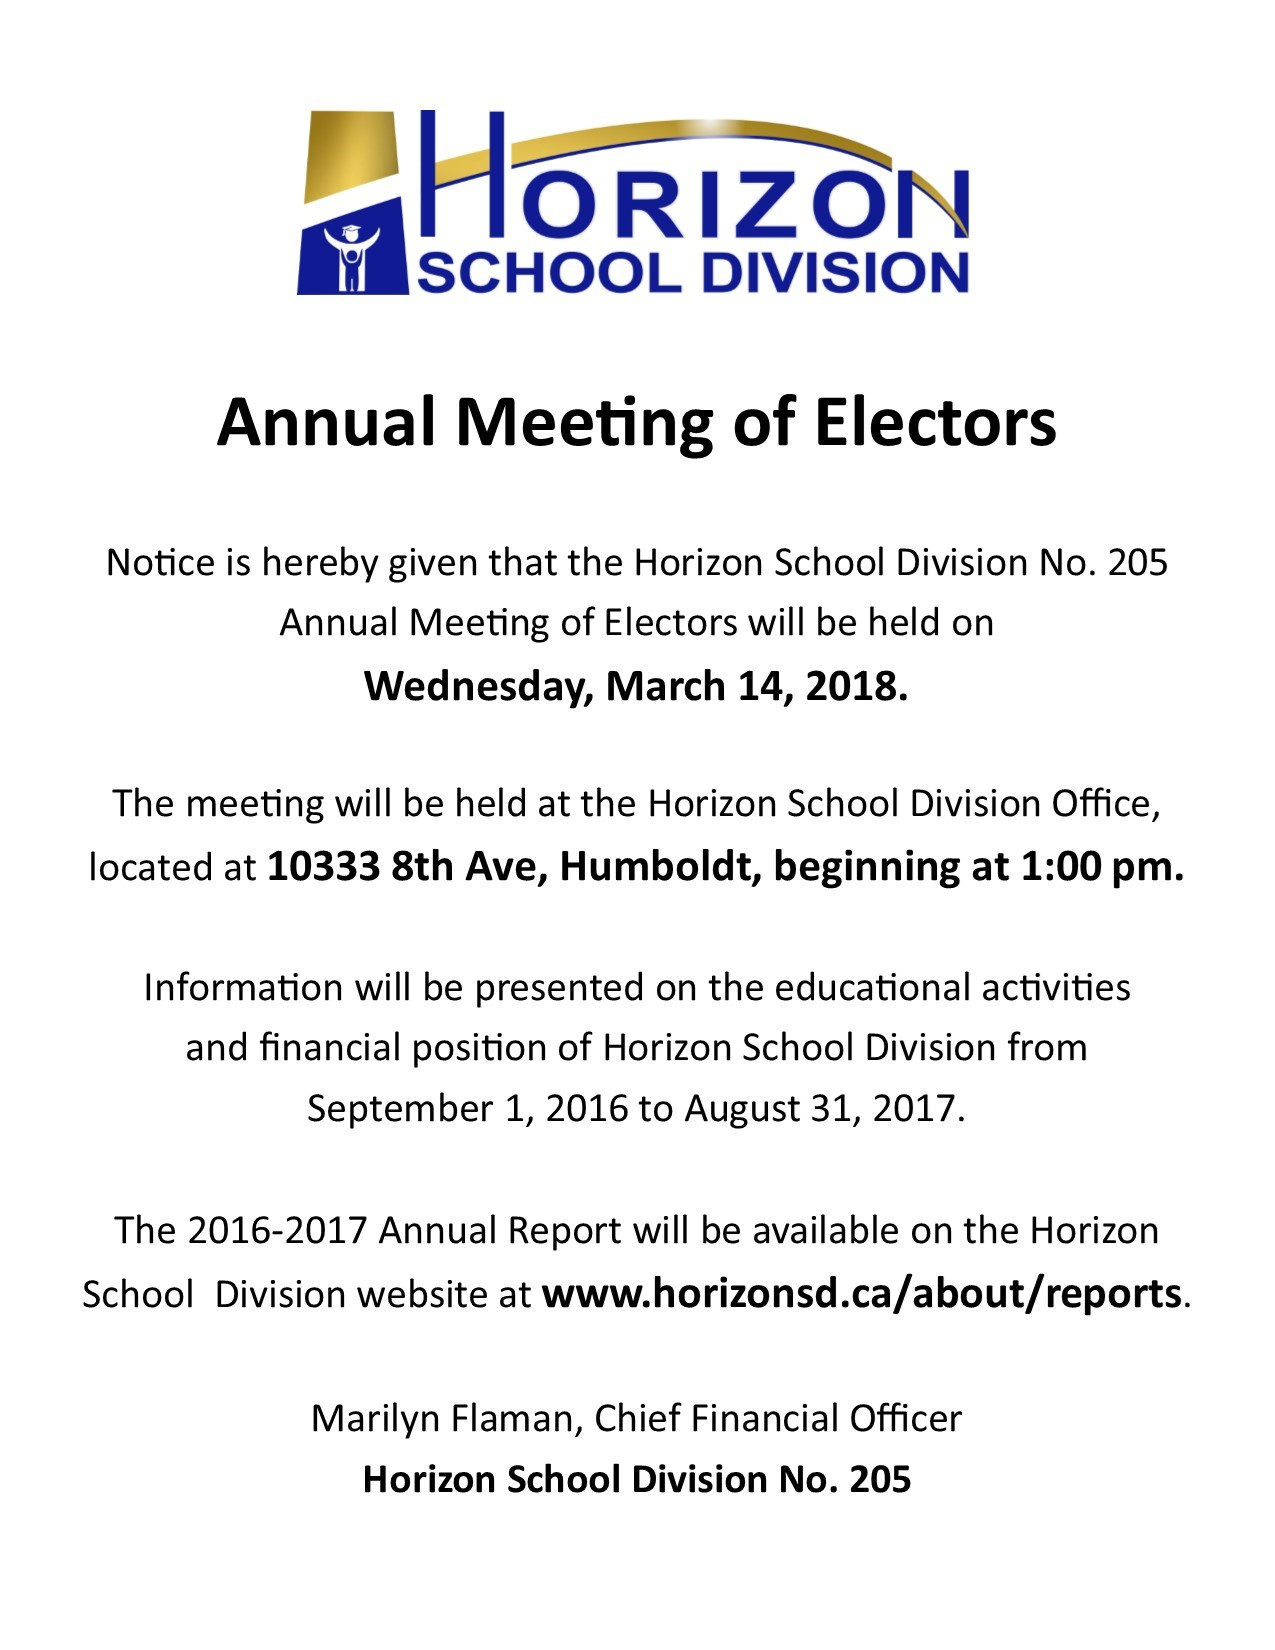 Annual Meeting 2018 Notice.jpg